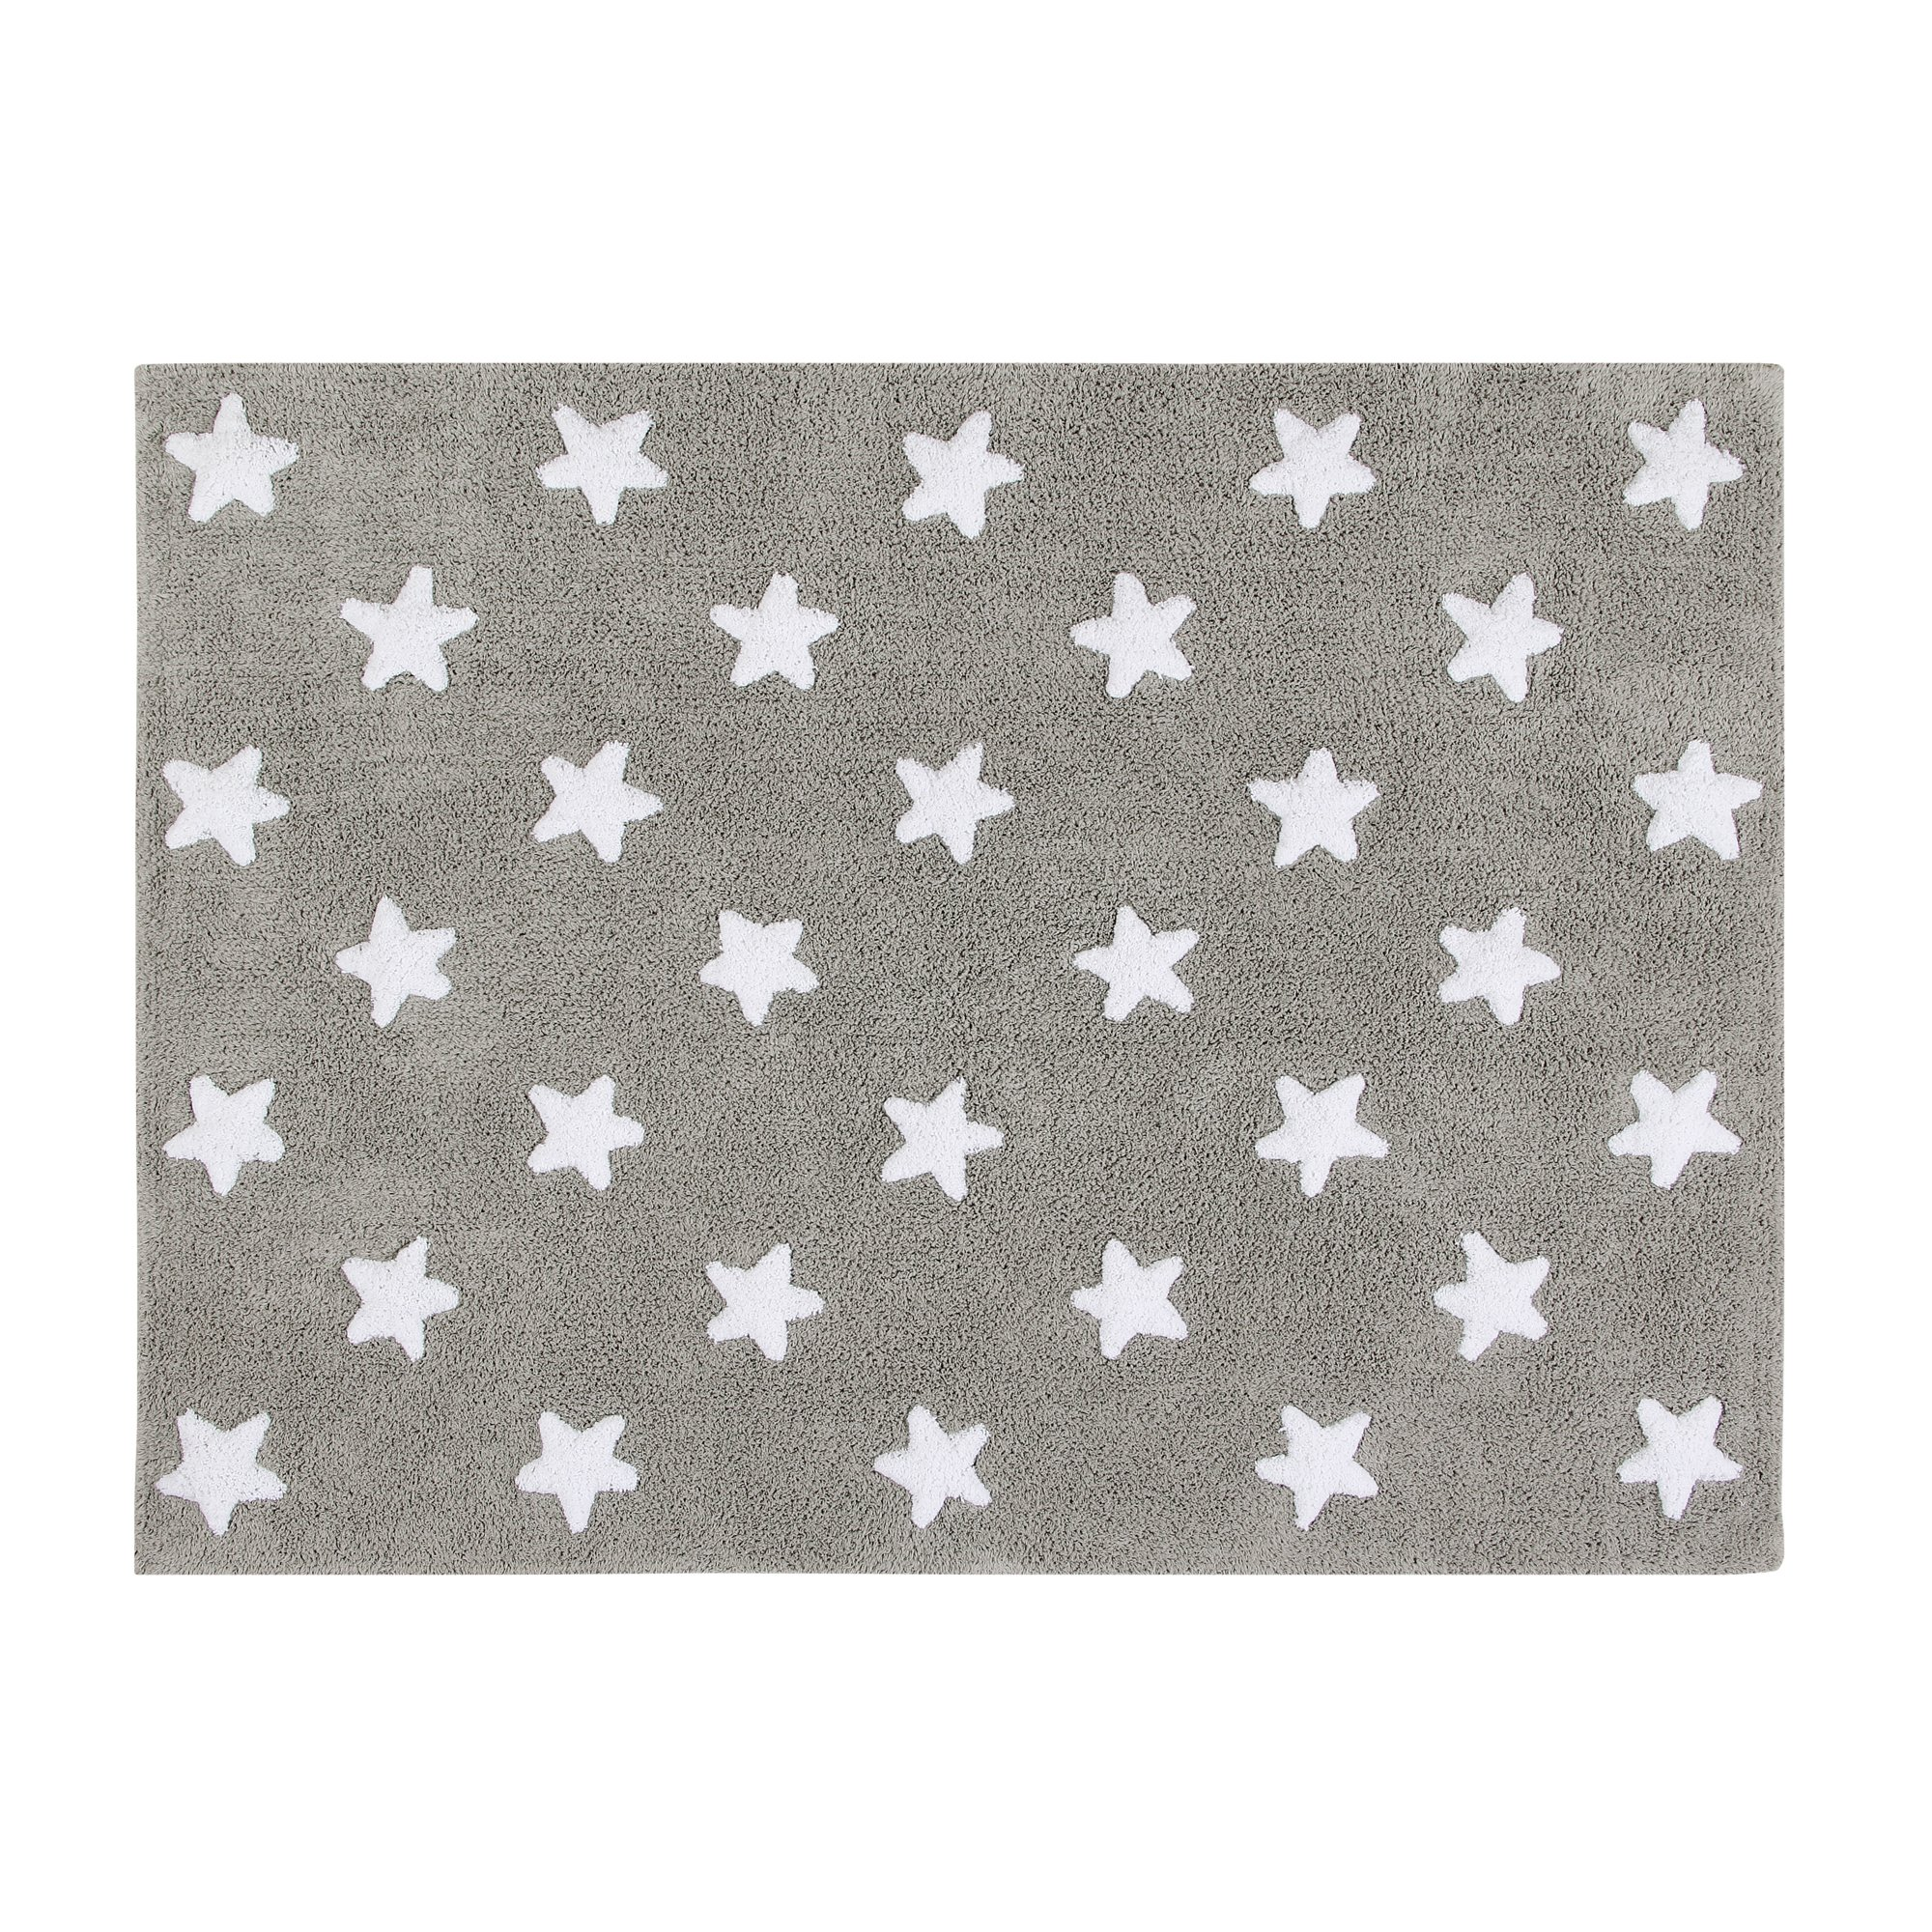 Lorena Canals Purple Flowers Washable Children's Rug - Machine Washable, Perfect for the Nursery - Handmade from 100% Natural Cotton and Non-Toxic Dyes by Lorena Canals (Image #2)